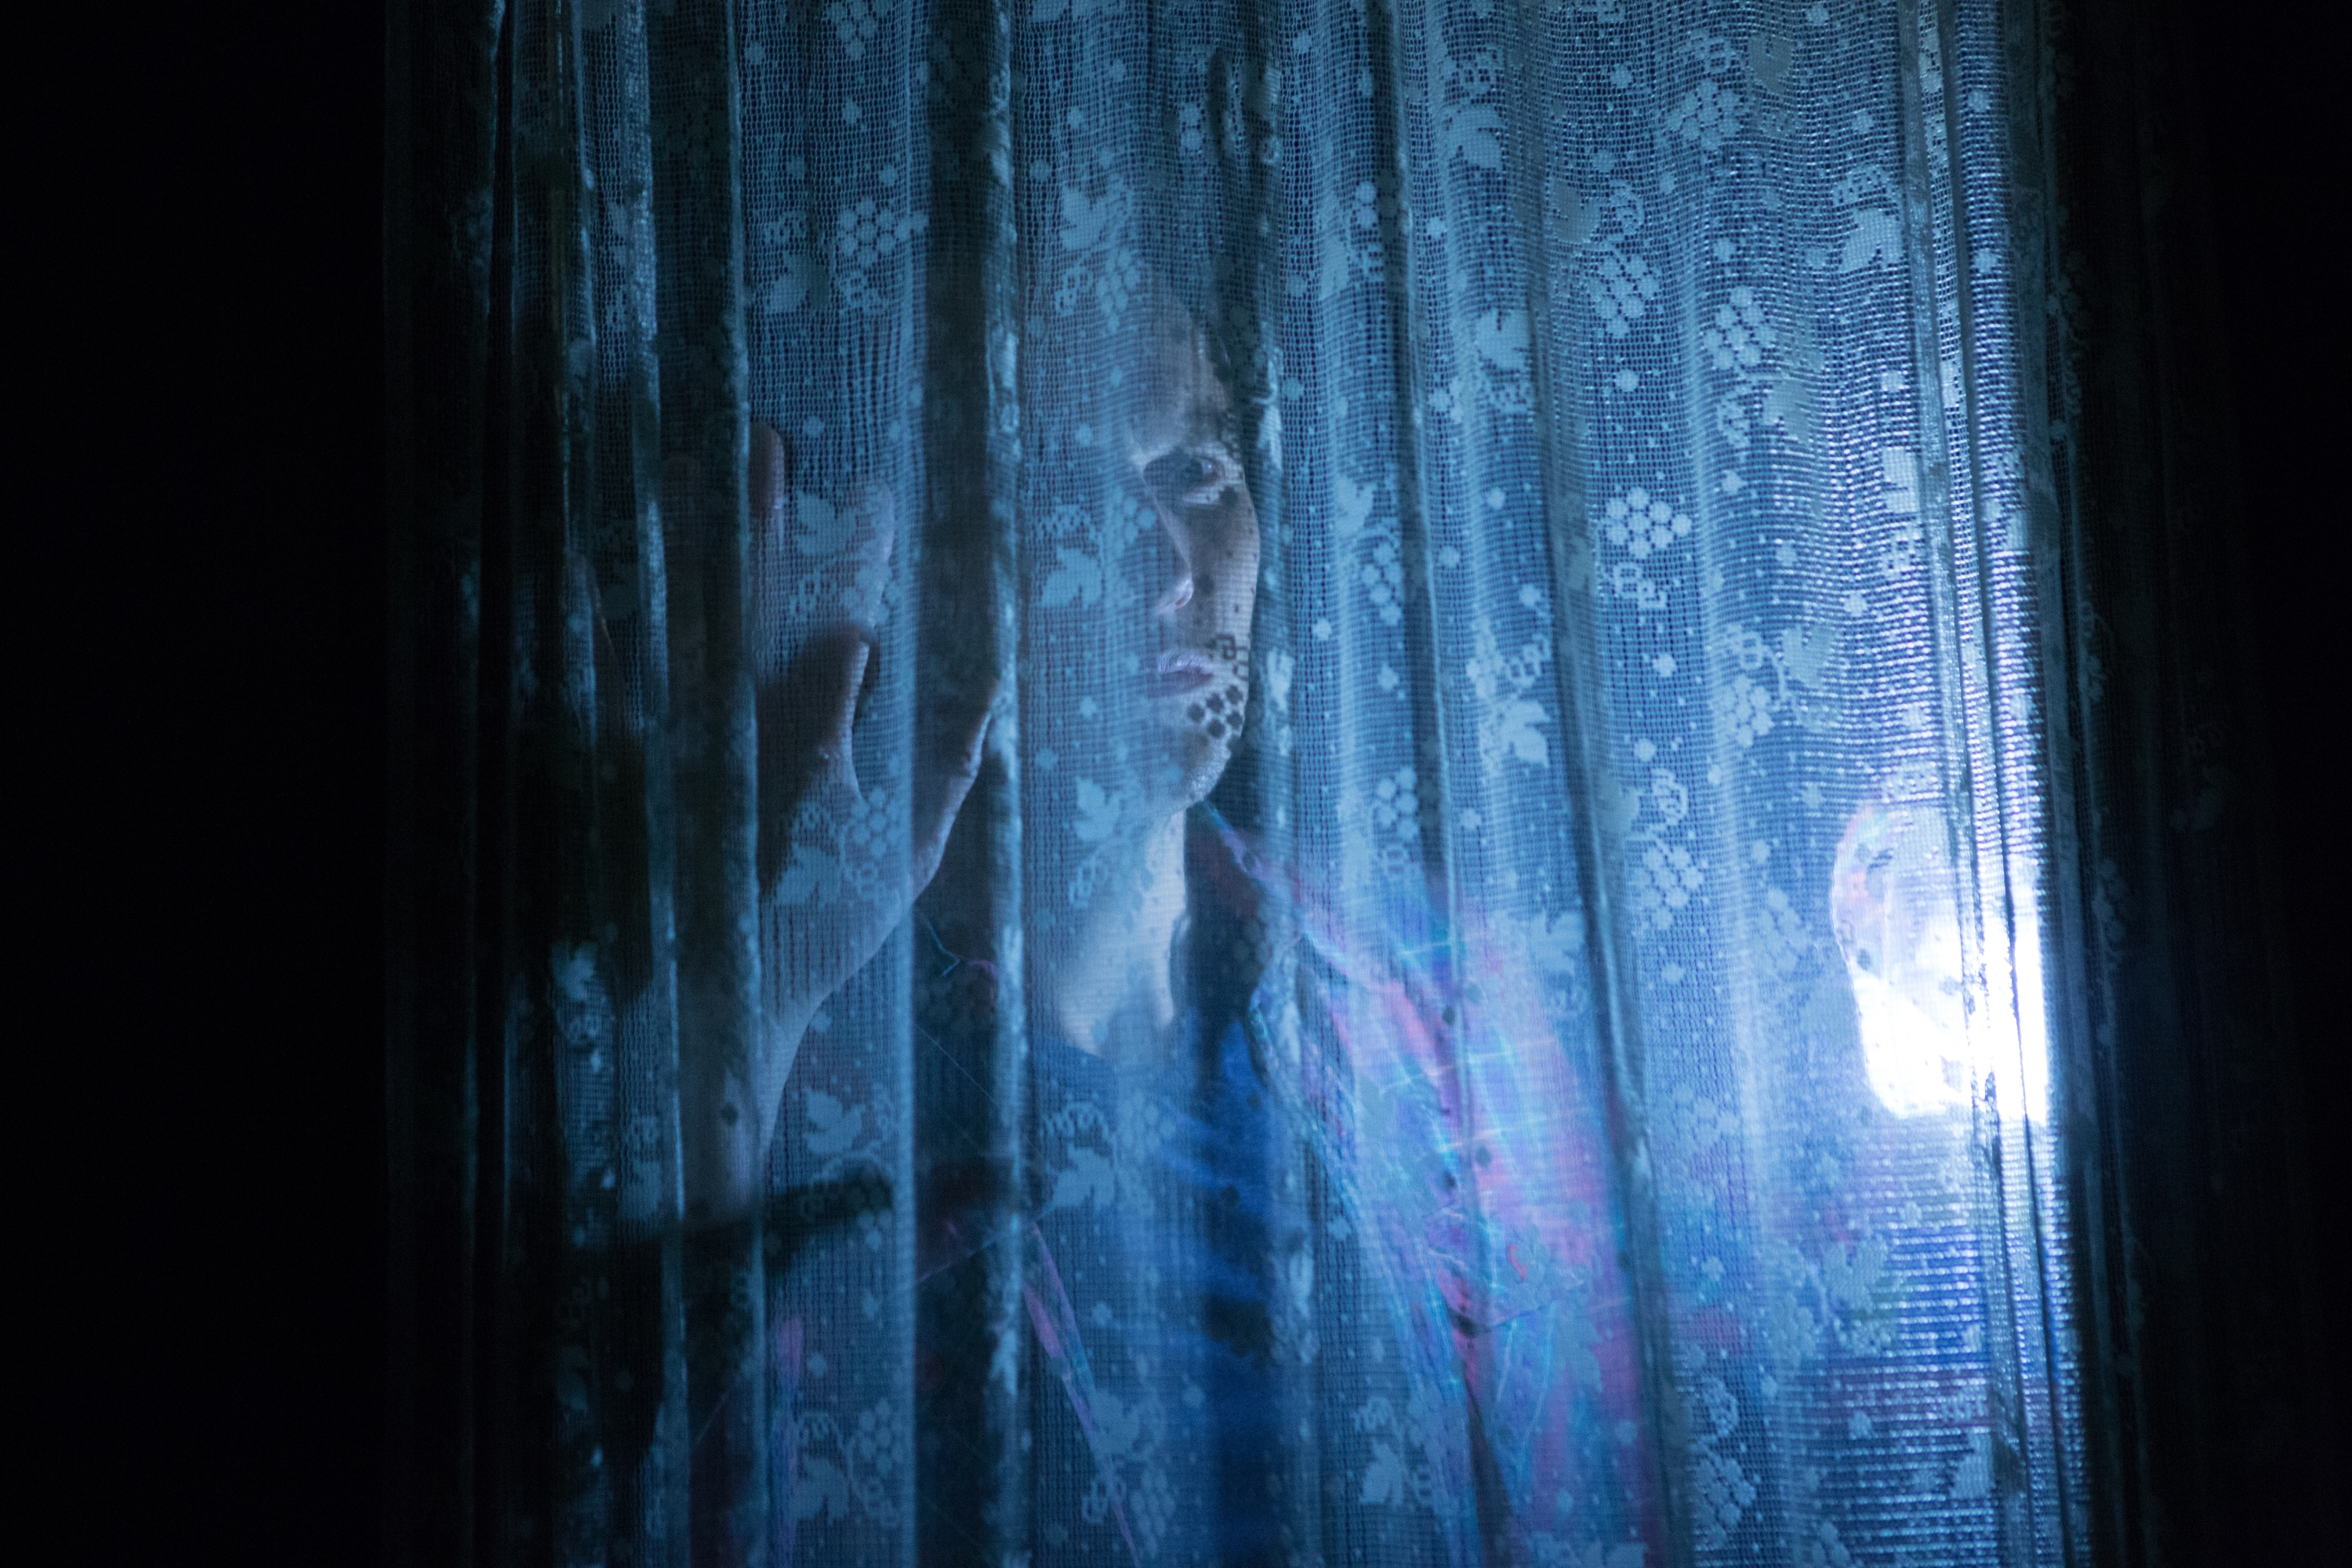 17 New Images from INSIDIOUS: CHAPTER 2; Take Part in Online Seance If